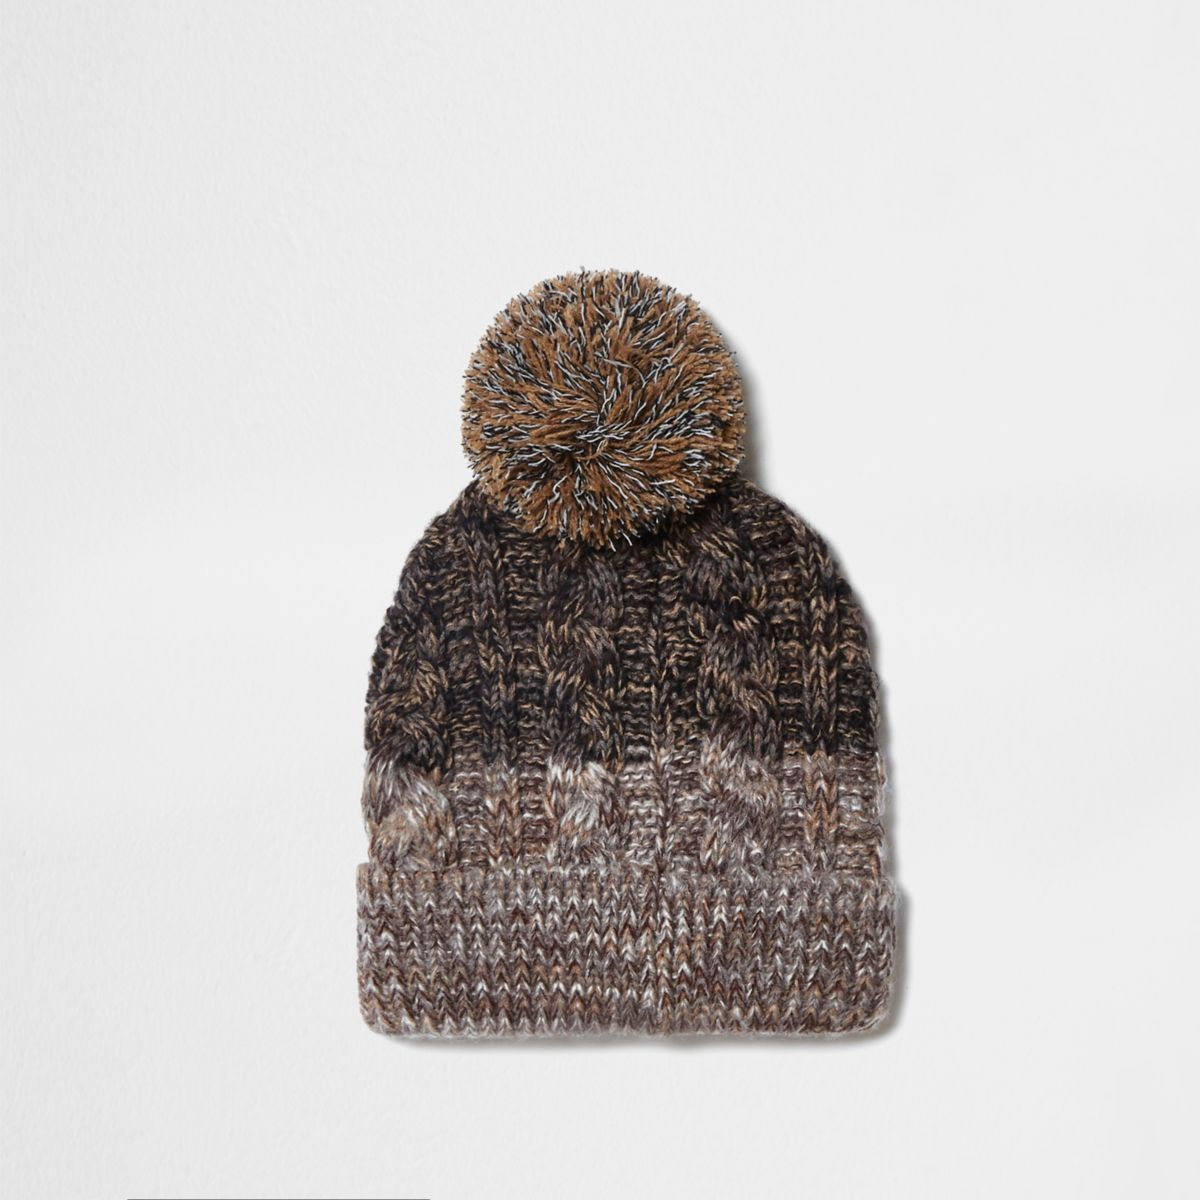 Light brown cable knit bobble beanie hat